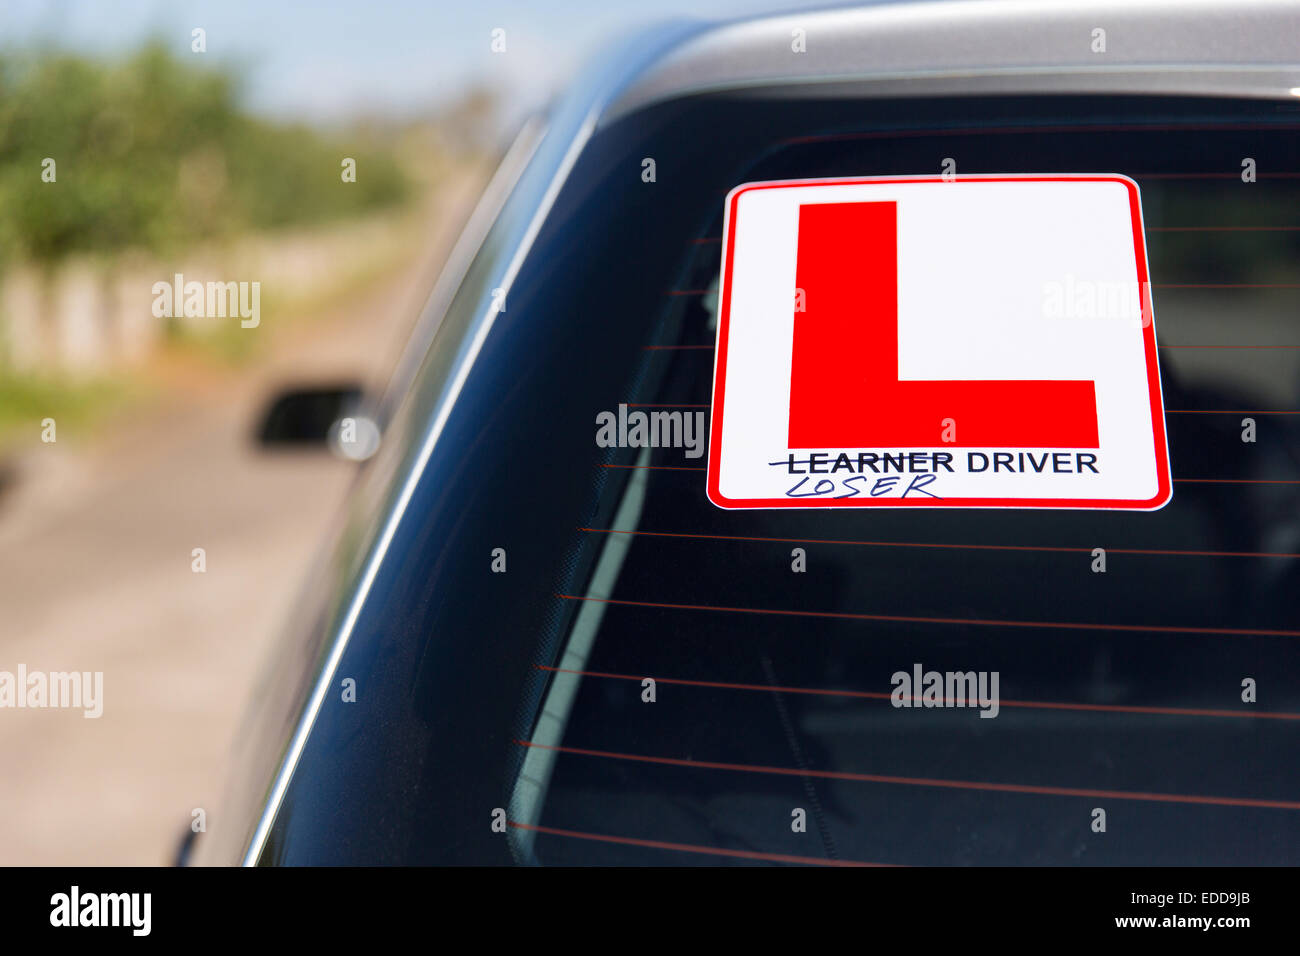 funny sign: leaner driver or loser driver - Stock Image